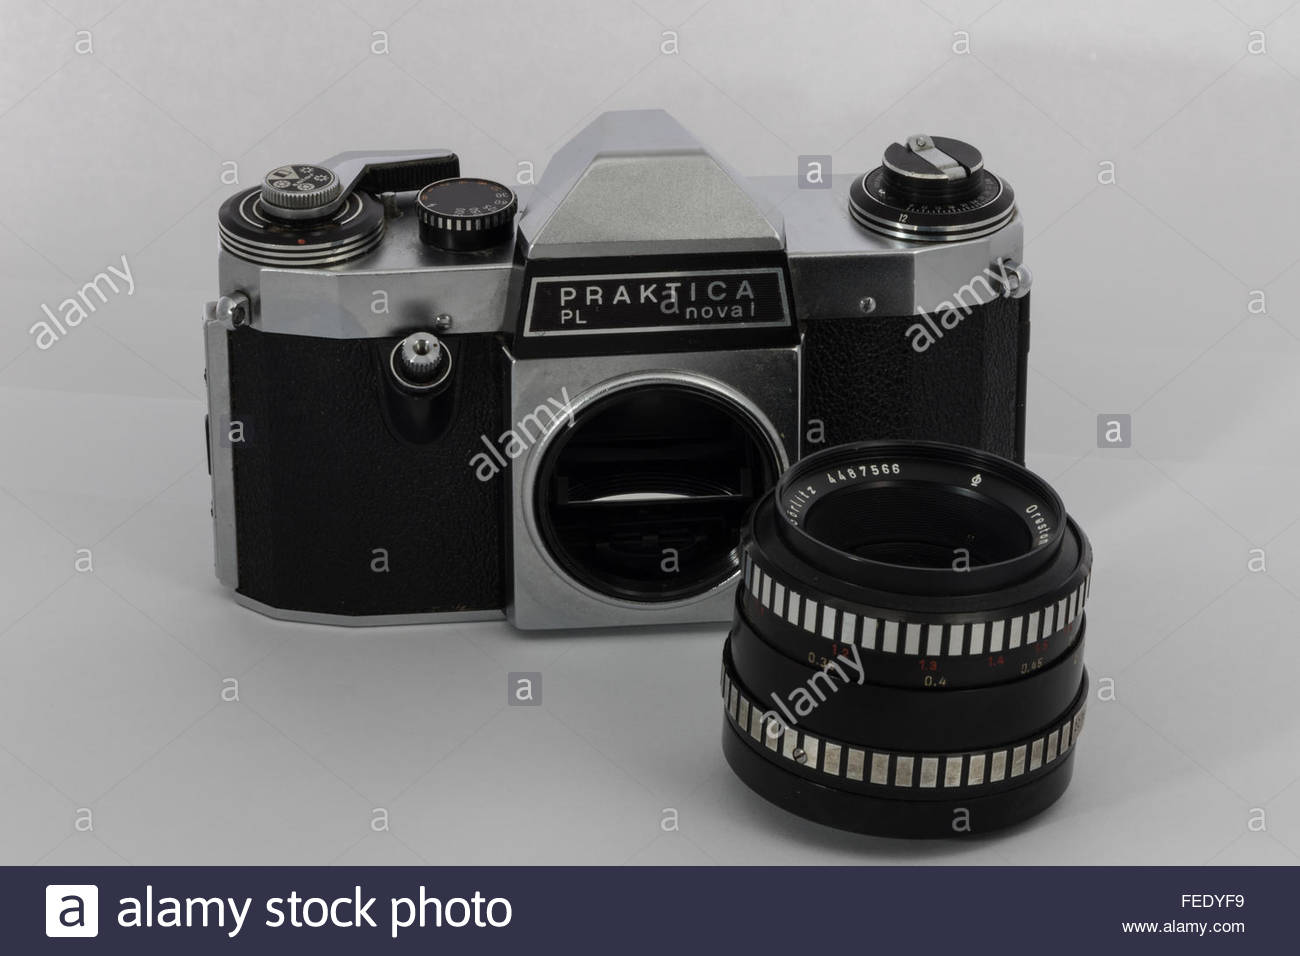 A Praktica Nova 1 a 35mm SLR film camera with a 1.8/50 Meyer-Optik Oreston lens.A 1970's entry-level SLR made - Stock Image